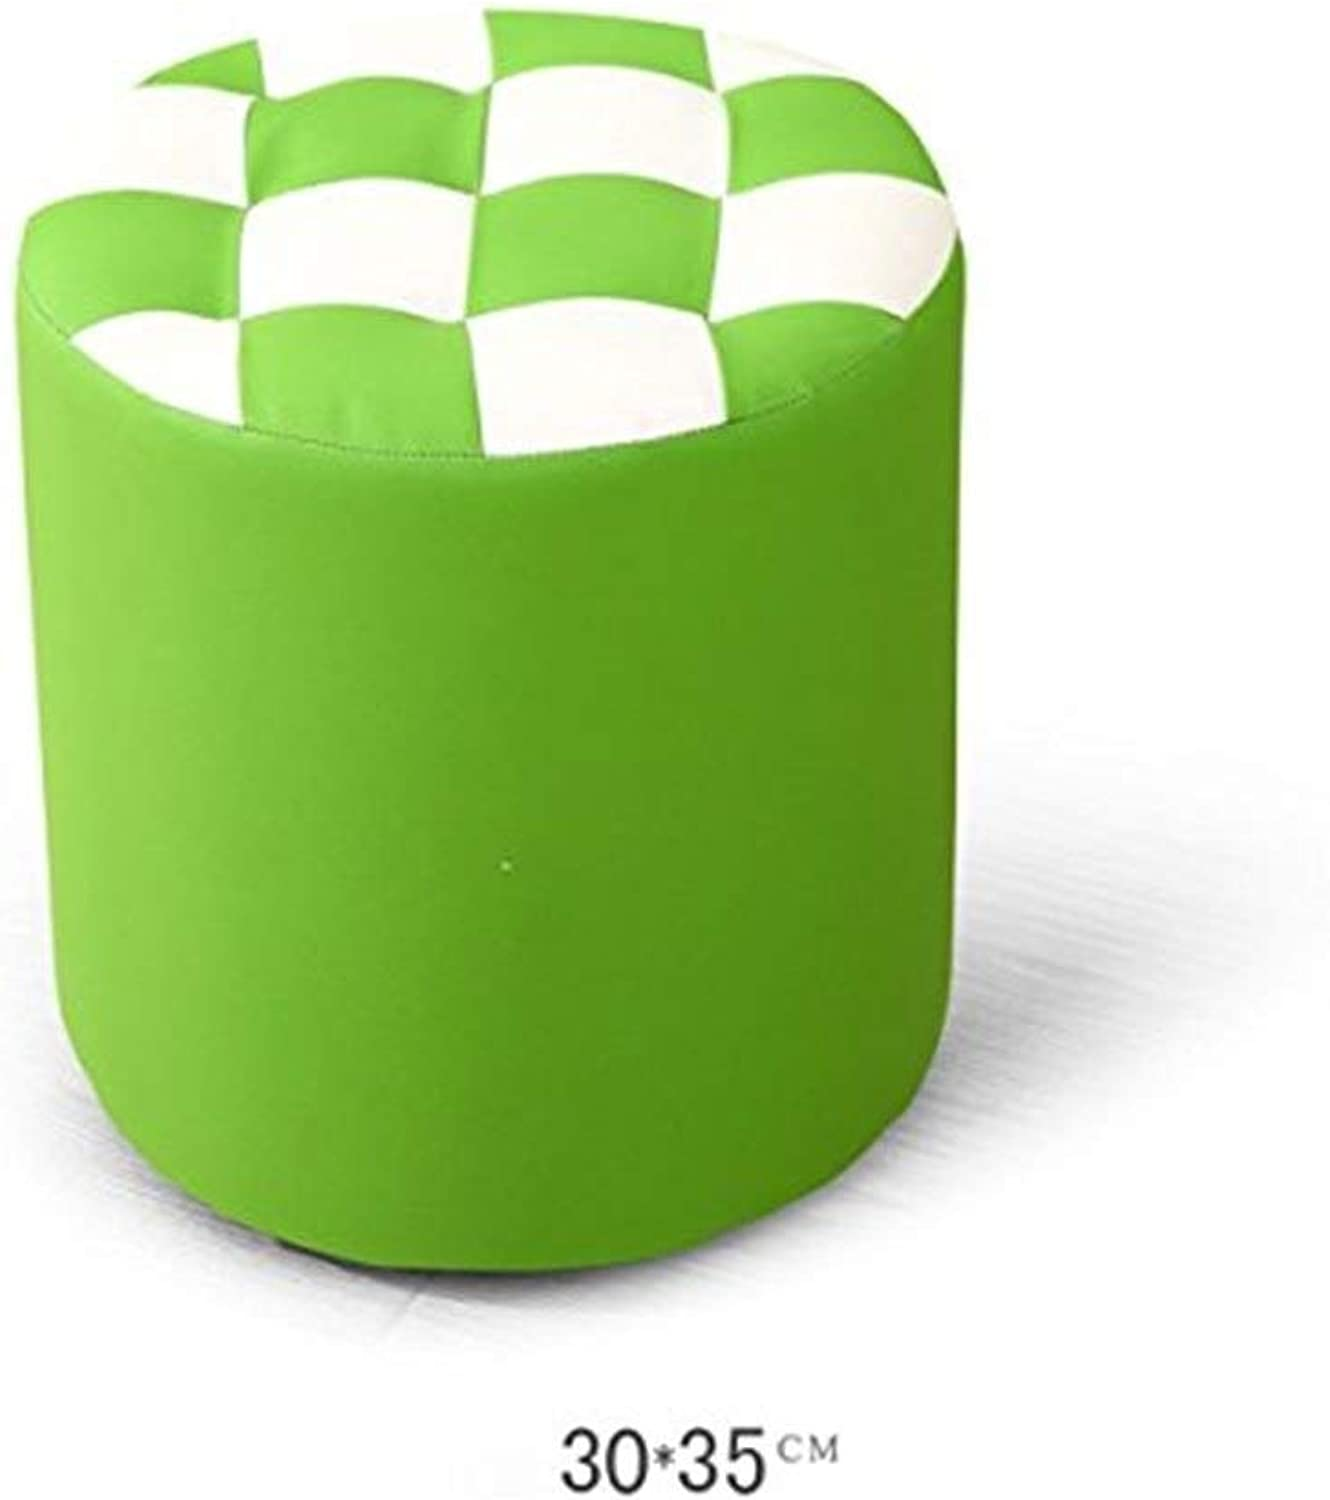 Cortex Round Block Modern Fashion Simple Creative Sofa Living Room Bedroom Stools shoes Change Stool FENPING (color   Green)